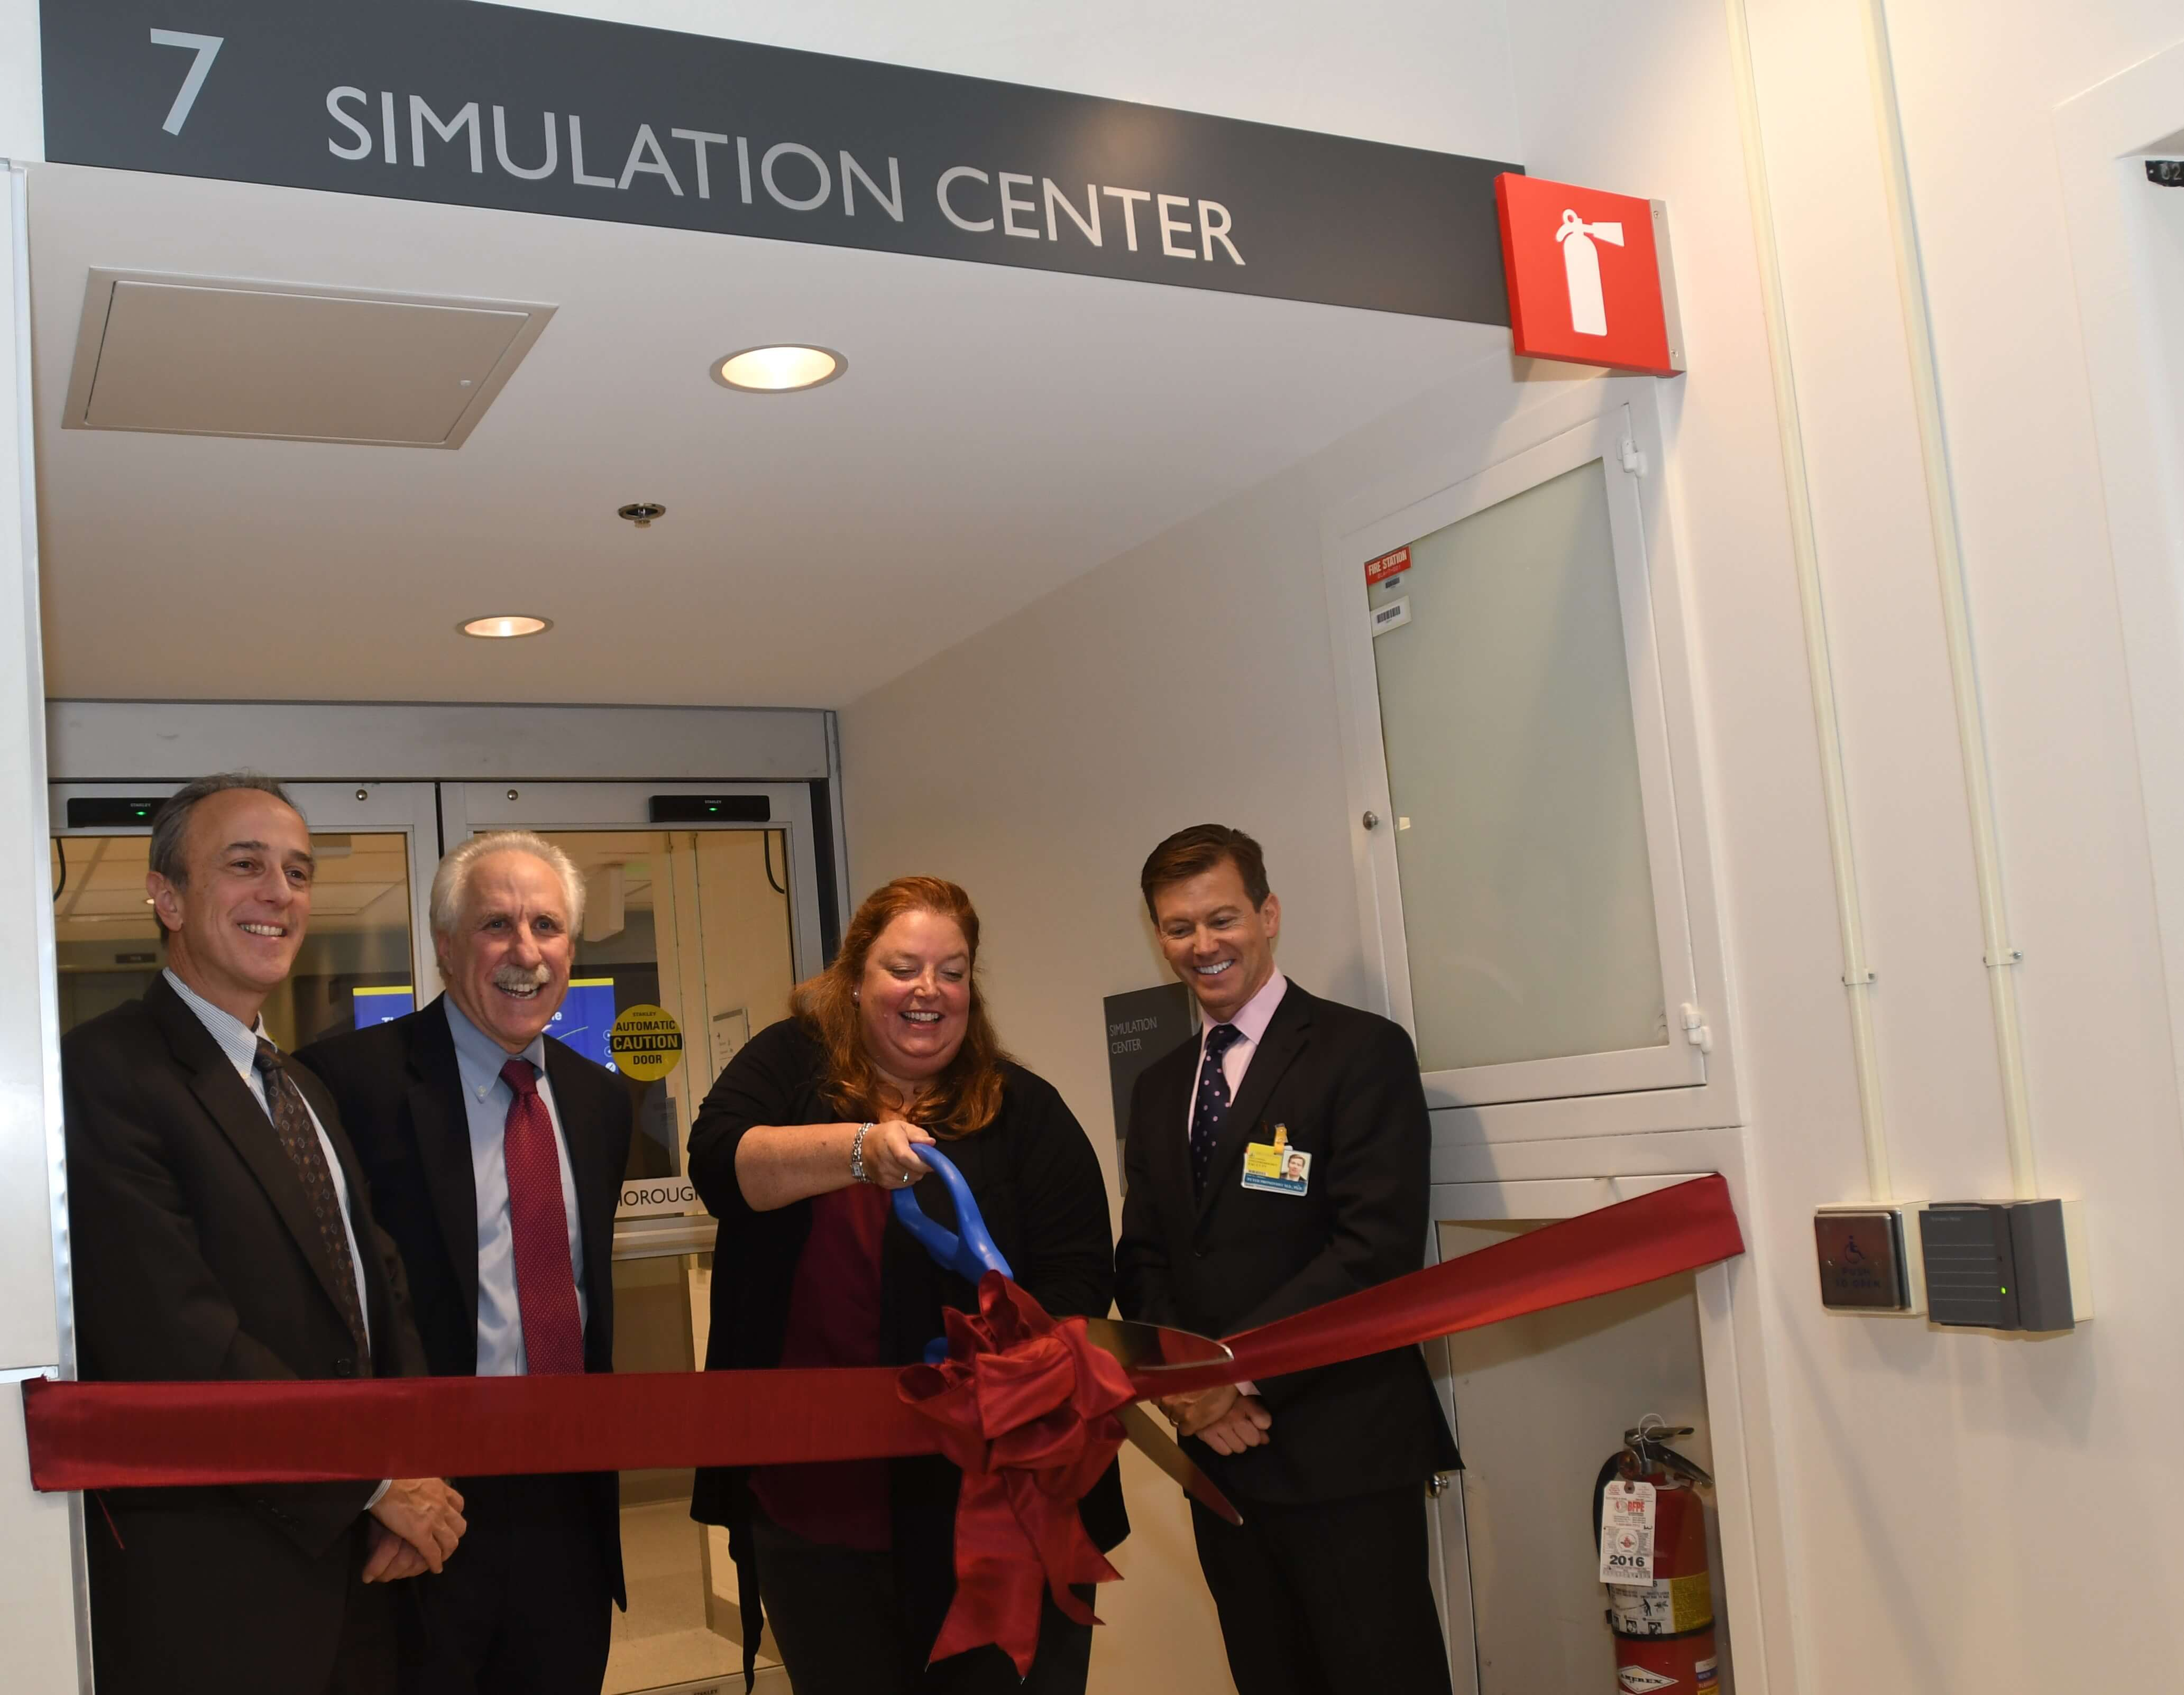 Blalock Sim Hospital Grand Opening